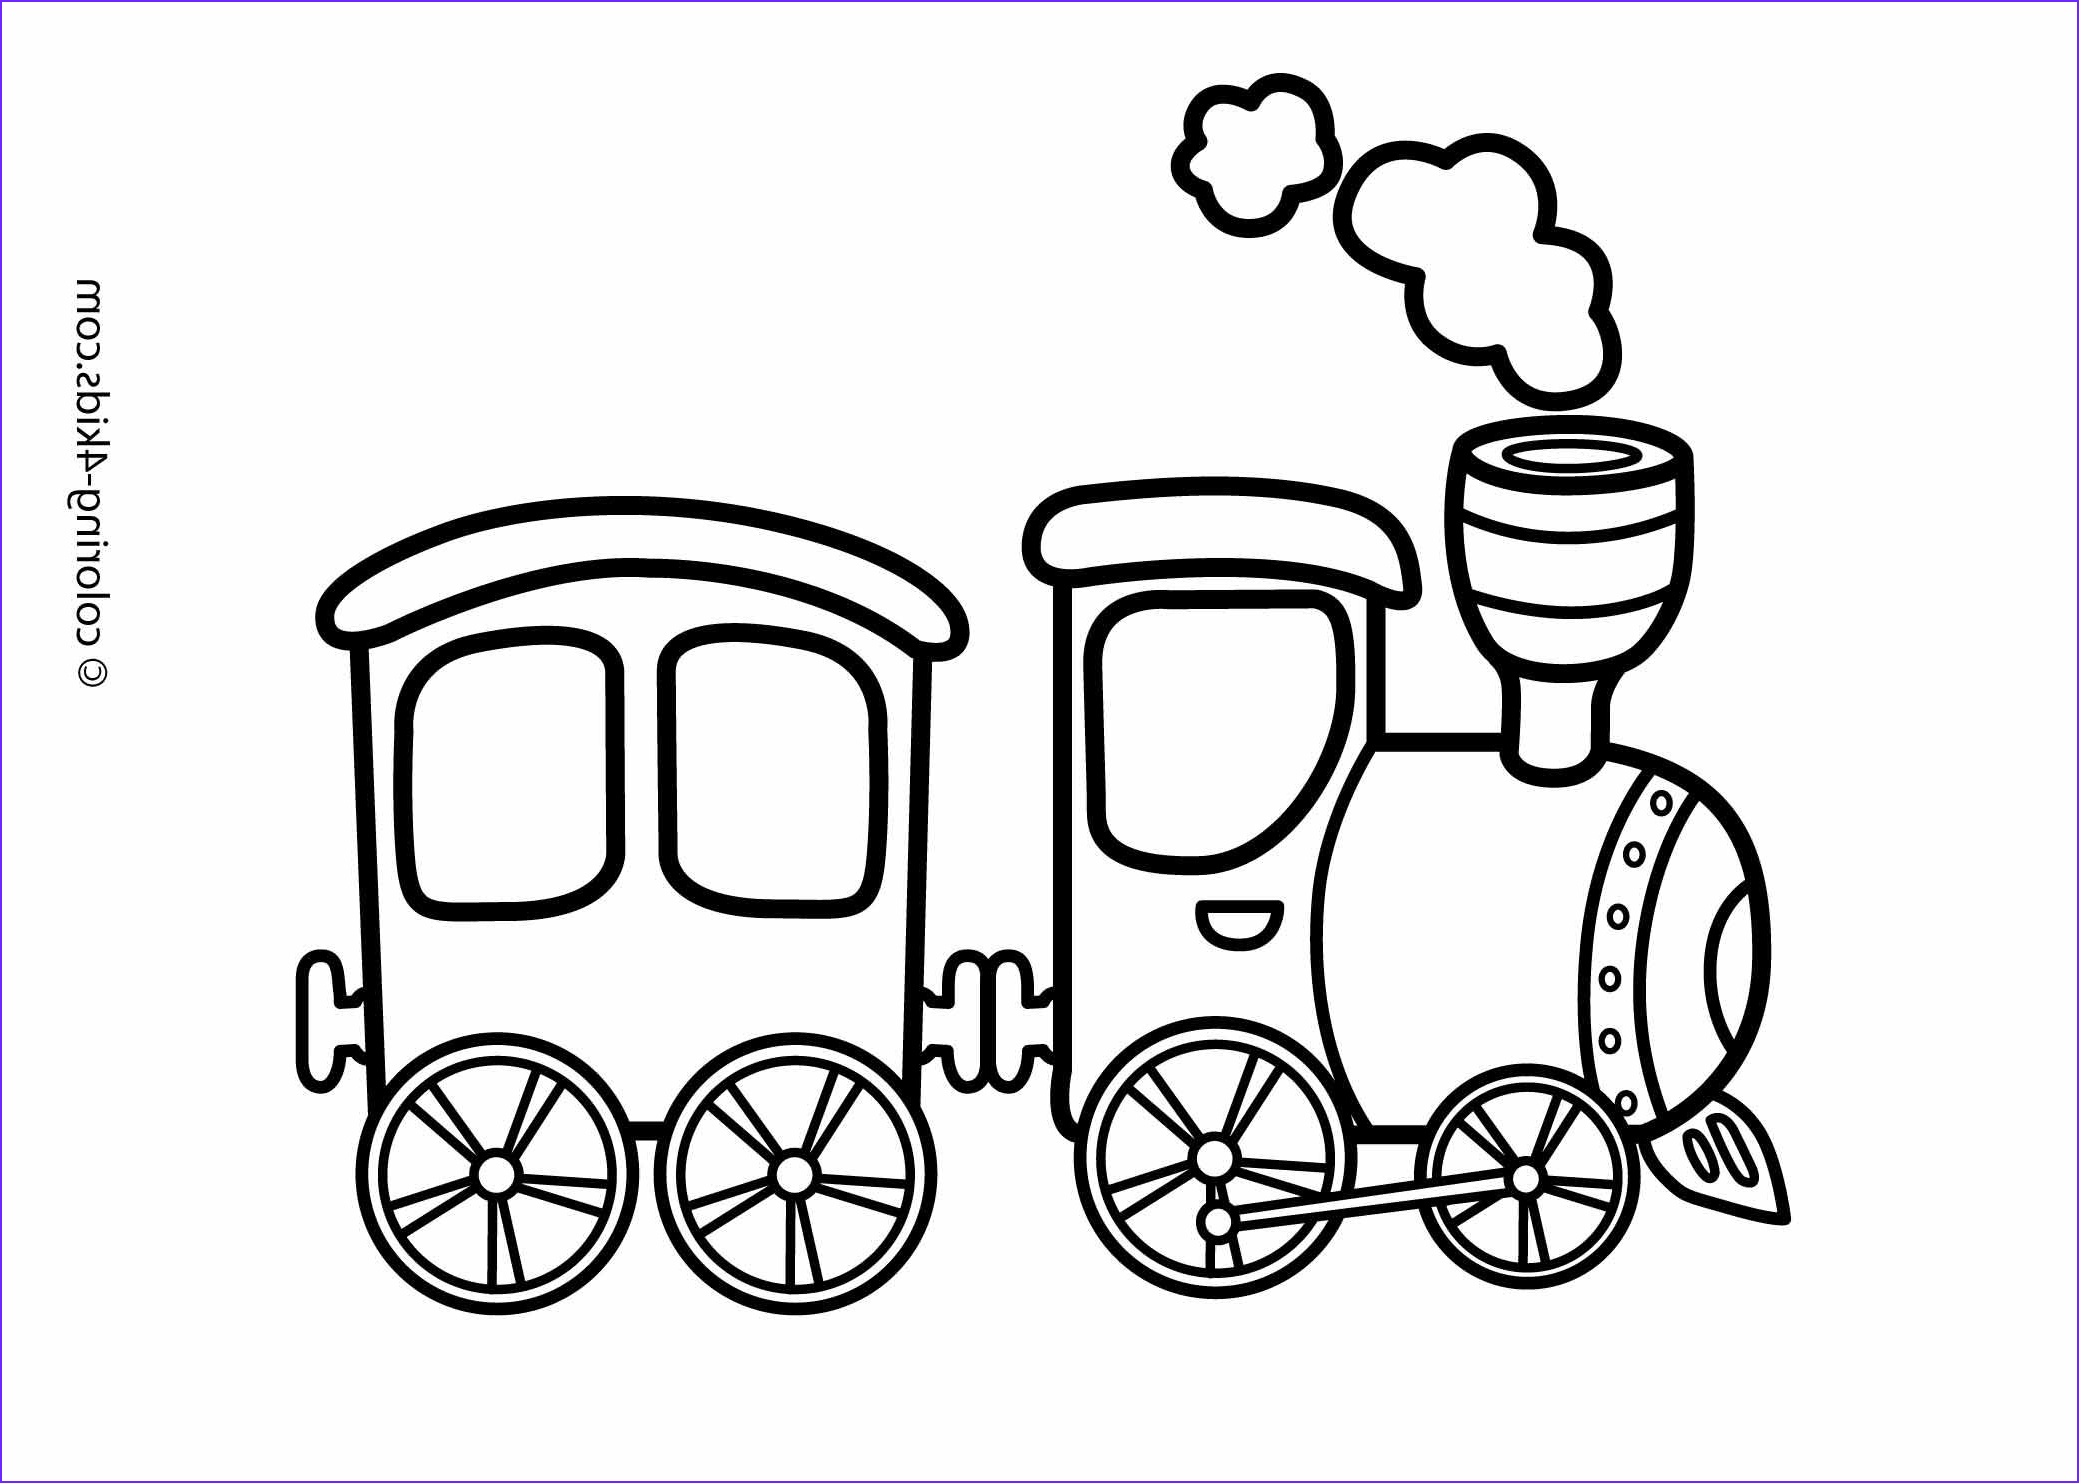 Coloring Pages Trains Beautiful Photos Train Transportation Coloring Pages for Kids Printable